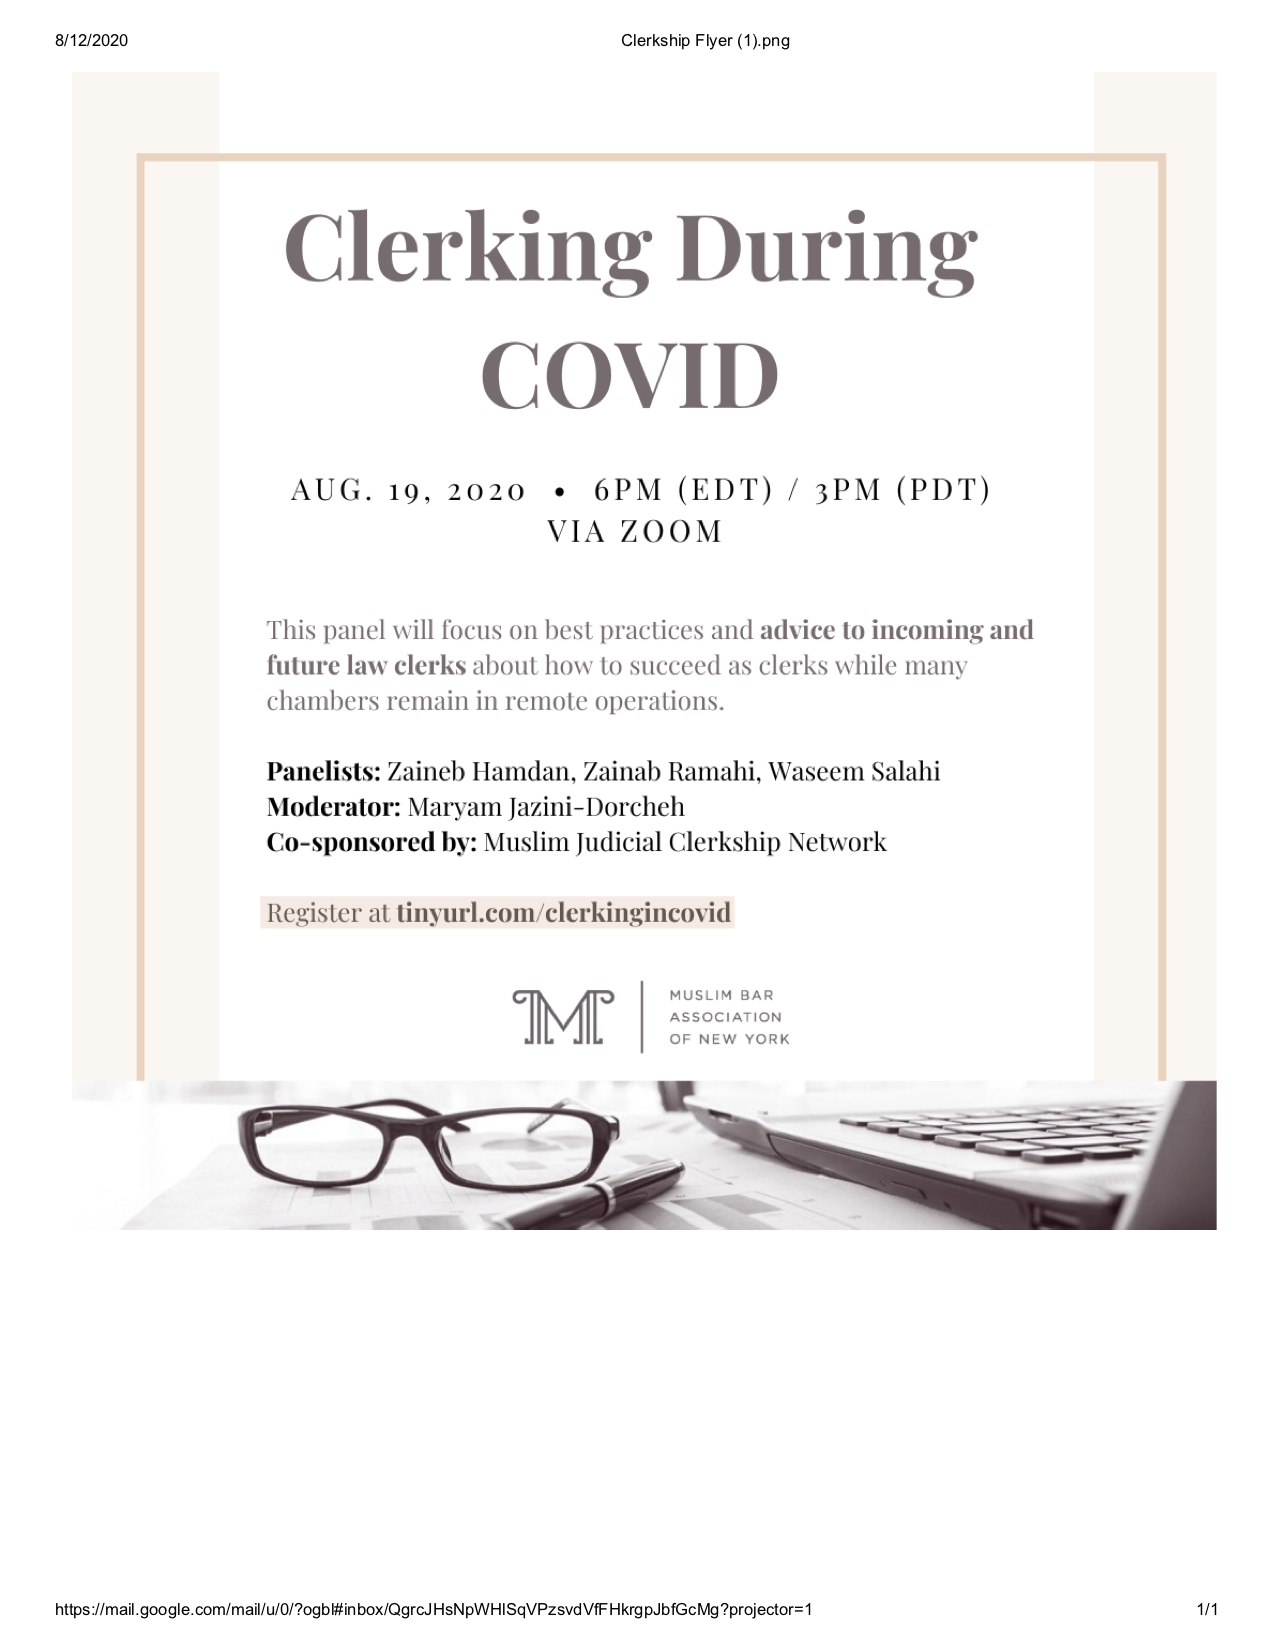 clerking during covid flyer 8.12.20 0